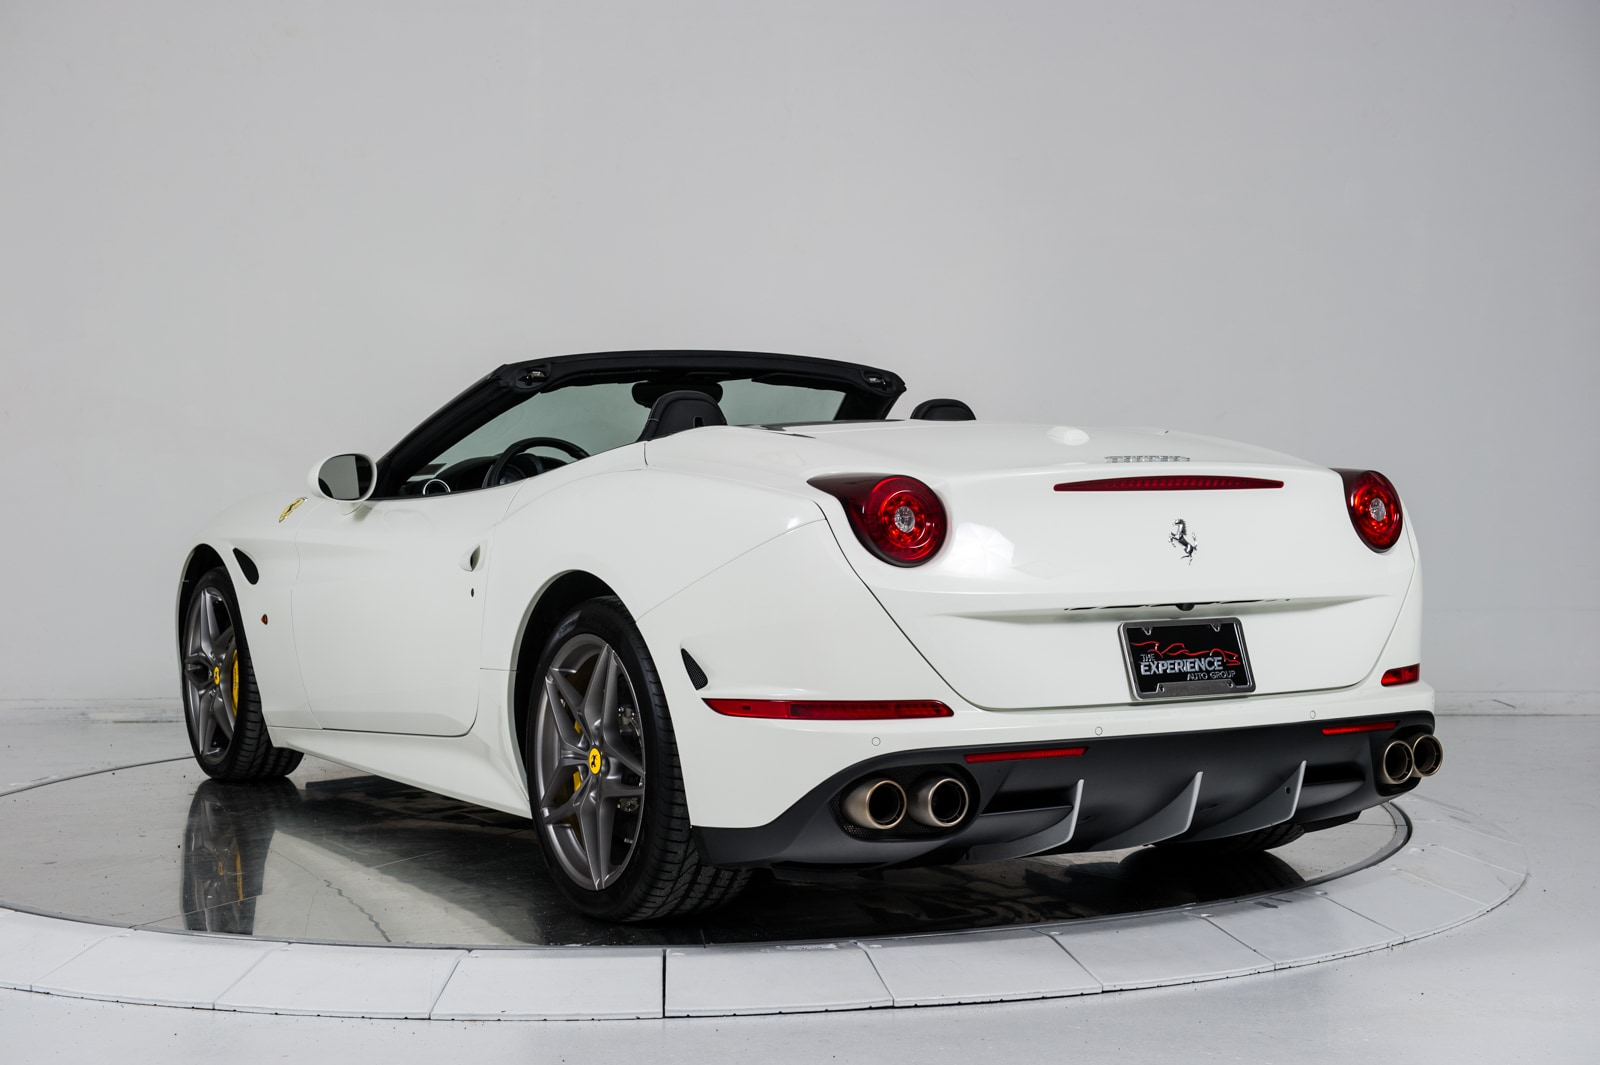 used 2015 ferrari california t for sale plainview near long island ny vin zff77xja8f0208146. Black Bedroom Furniture Sets. Home Design Ideas